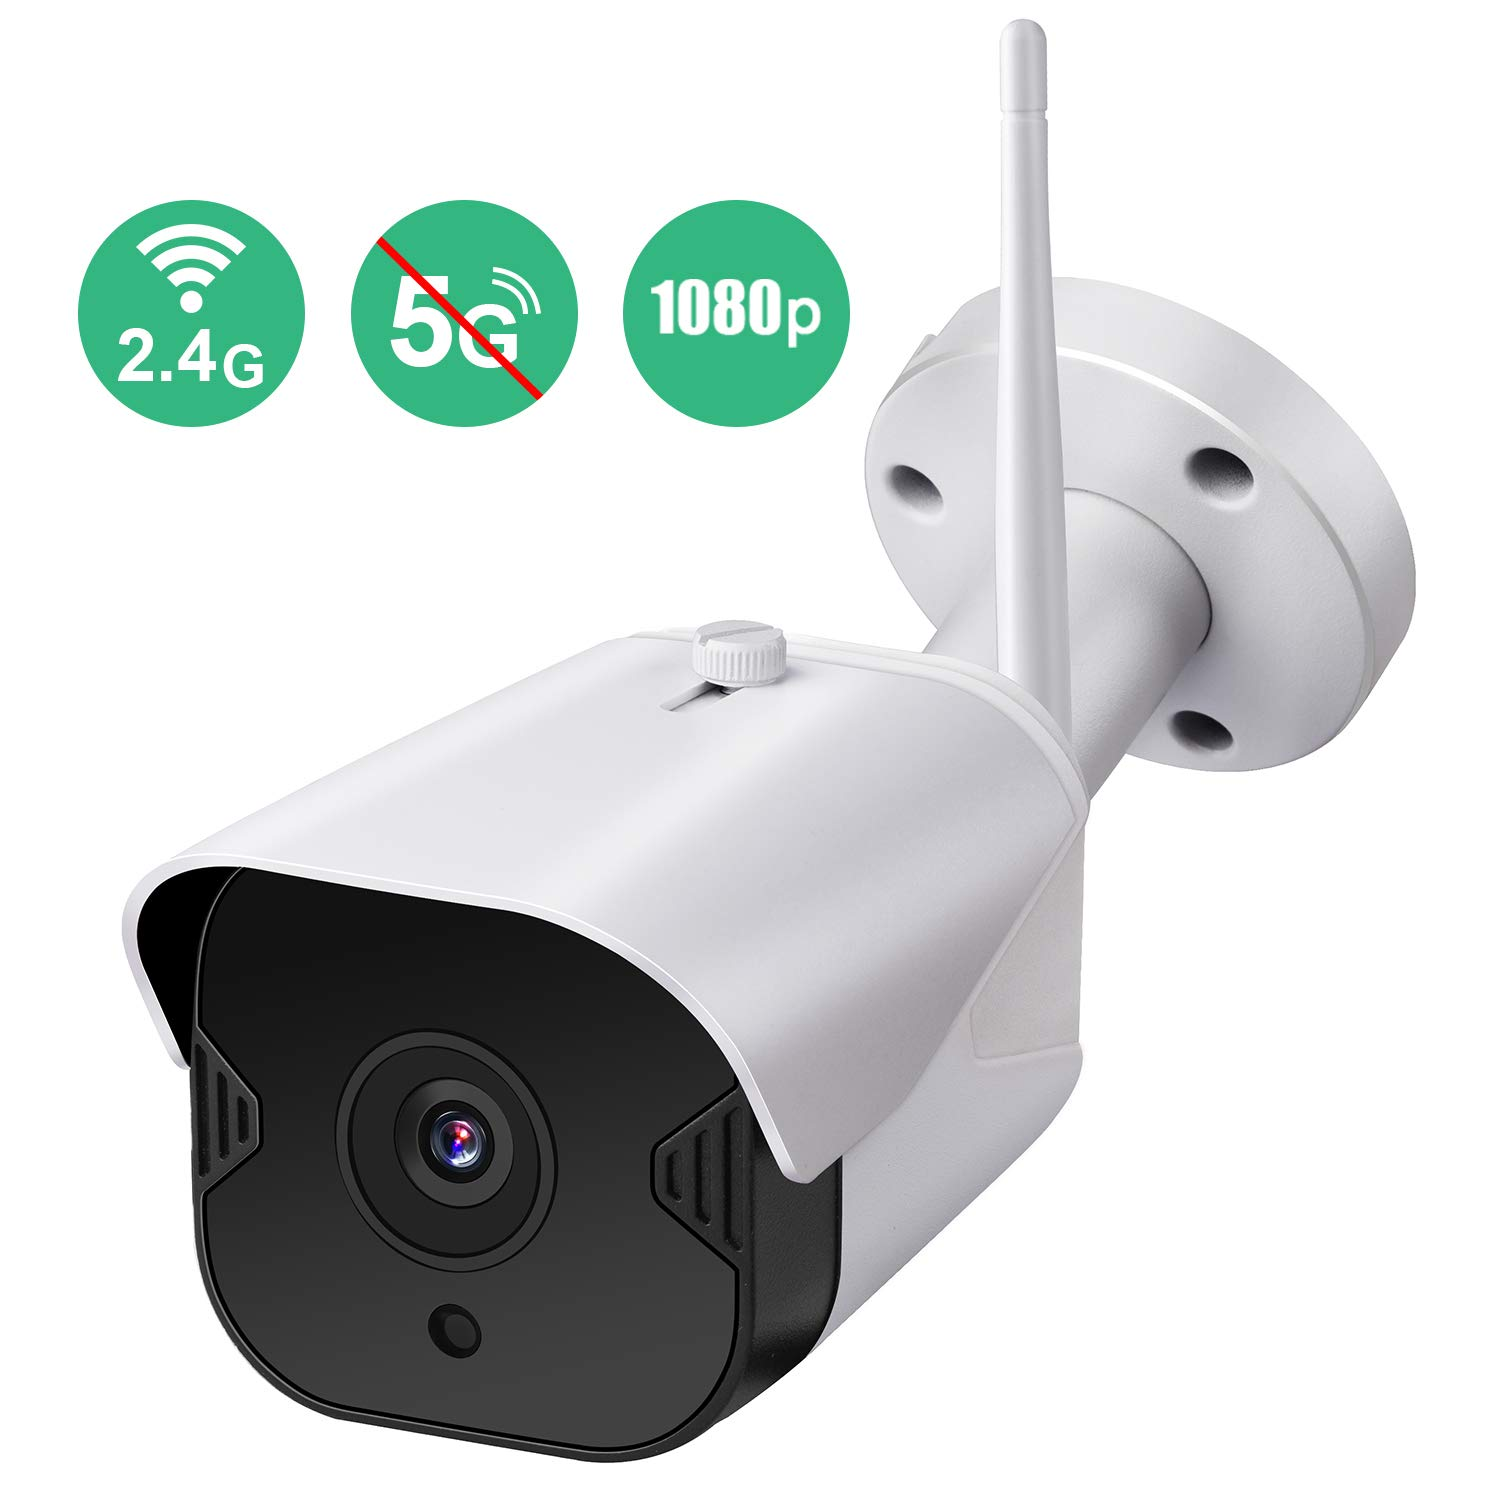 Amzpas Outdoor Security Camera, 1080p Night Vision WiFi Camera 2.4GHZ Outdoor Wireless Camera IP65 Waterproof Bullet Surveillance Camera with Motion Detection, Activity Alert, Two-Way Audio (White) by Amzpas